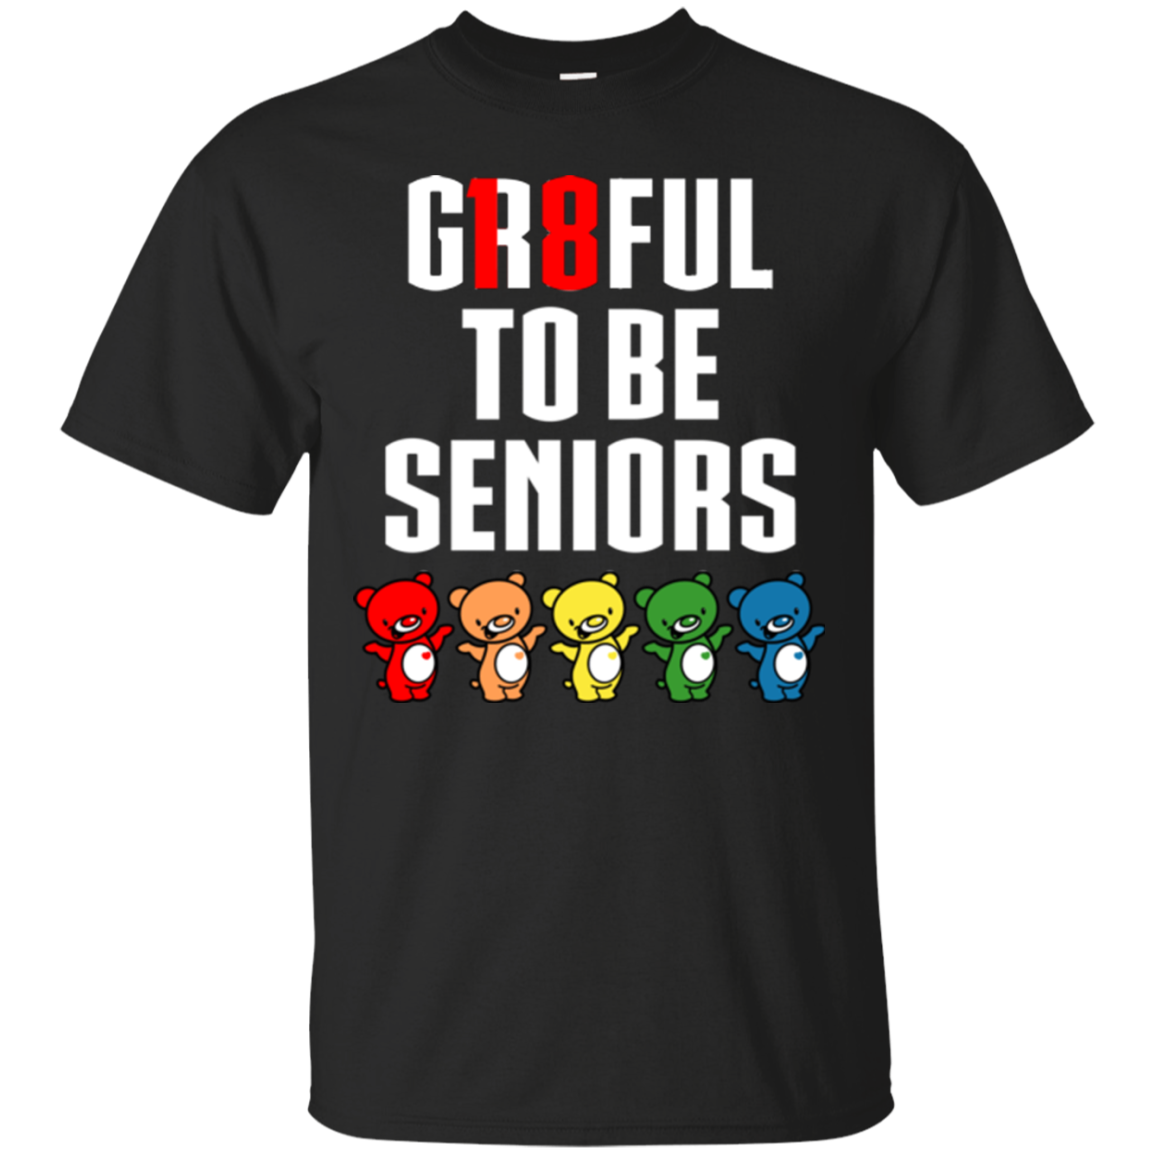 12th Grade  Senior Year T shirts Gr8ful To Be Seniors Hoodies Sweatshirts